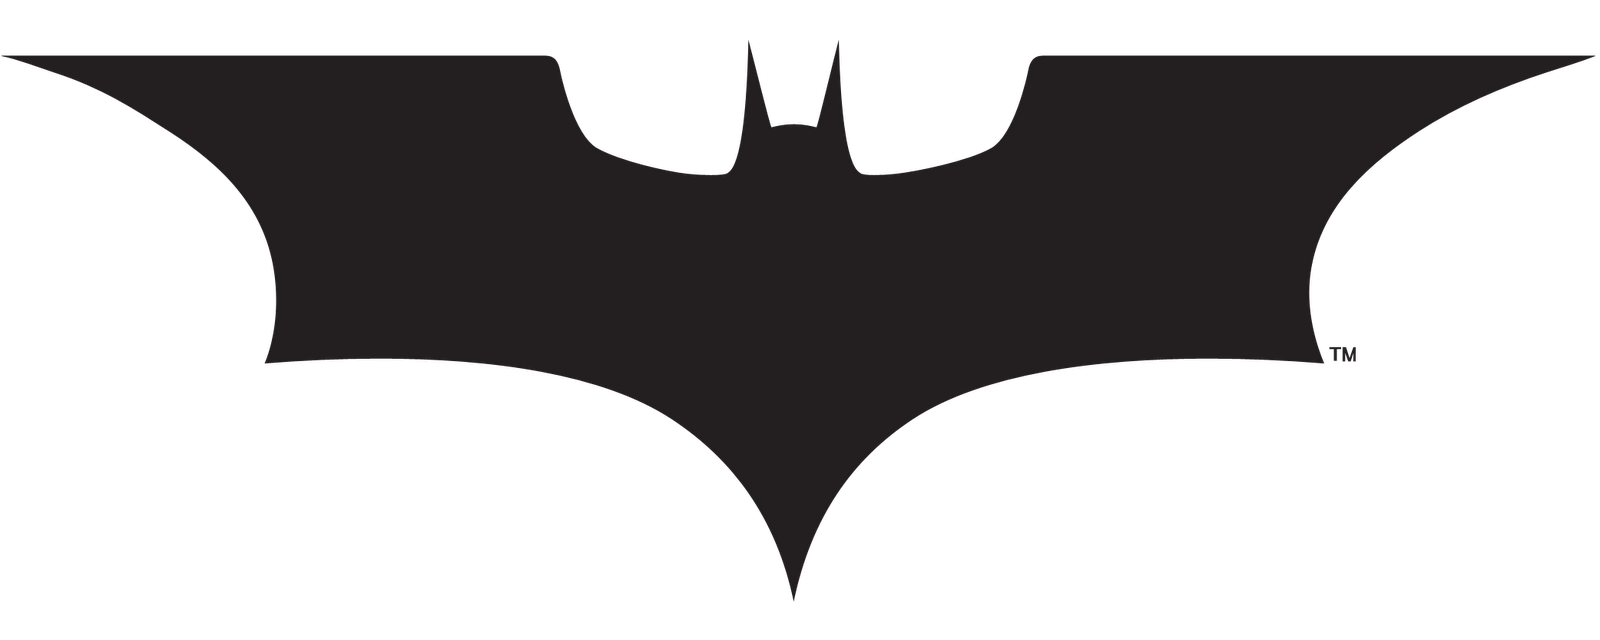 Batman begins logo png #2049 - Free Transparent PNG Logos